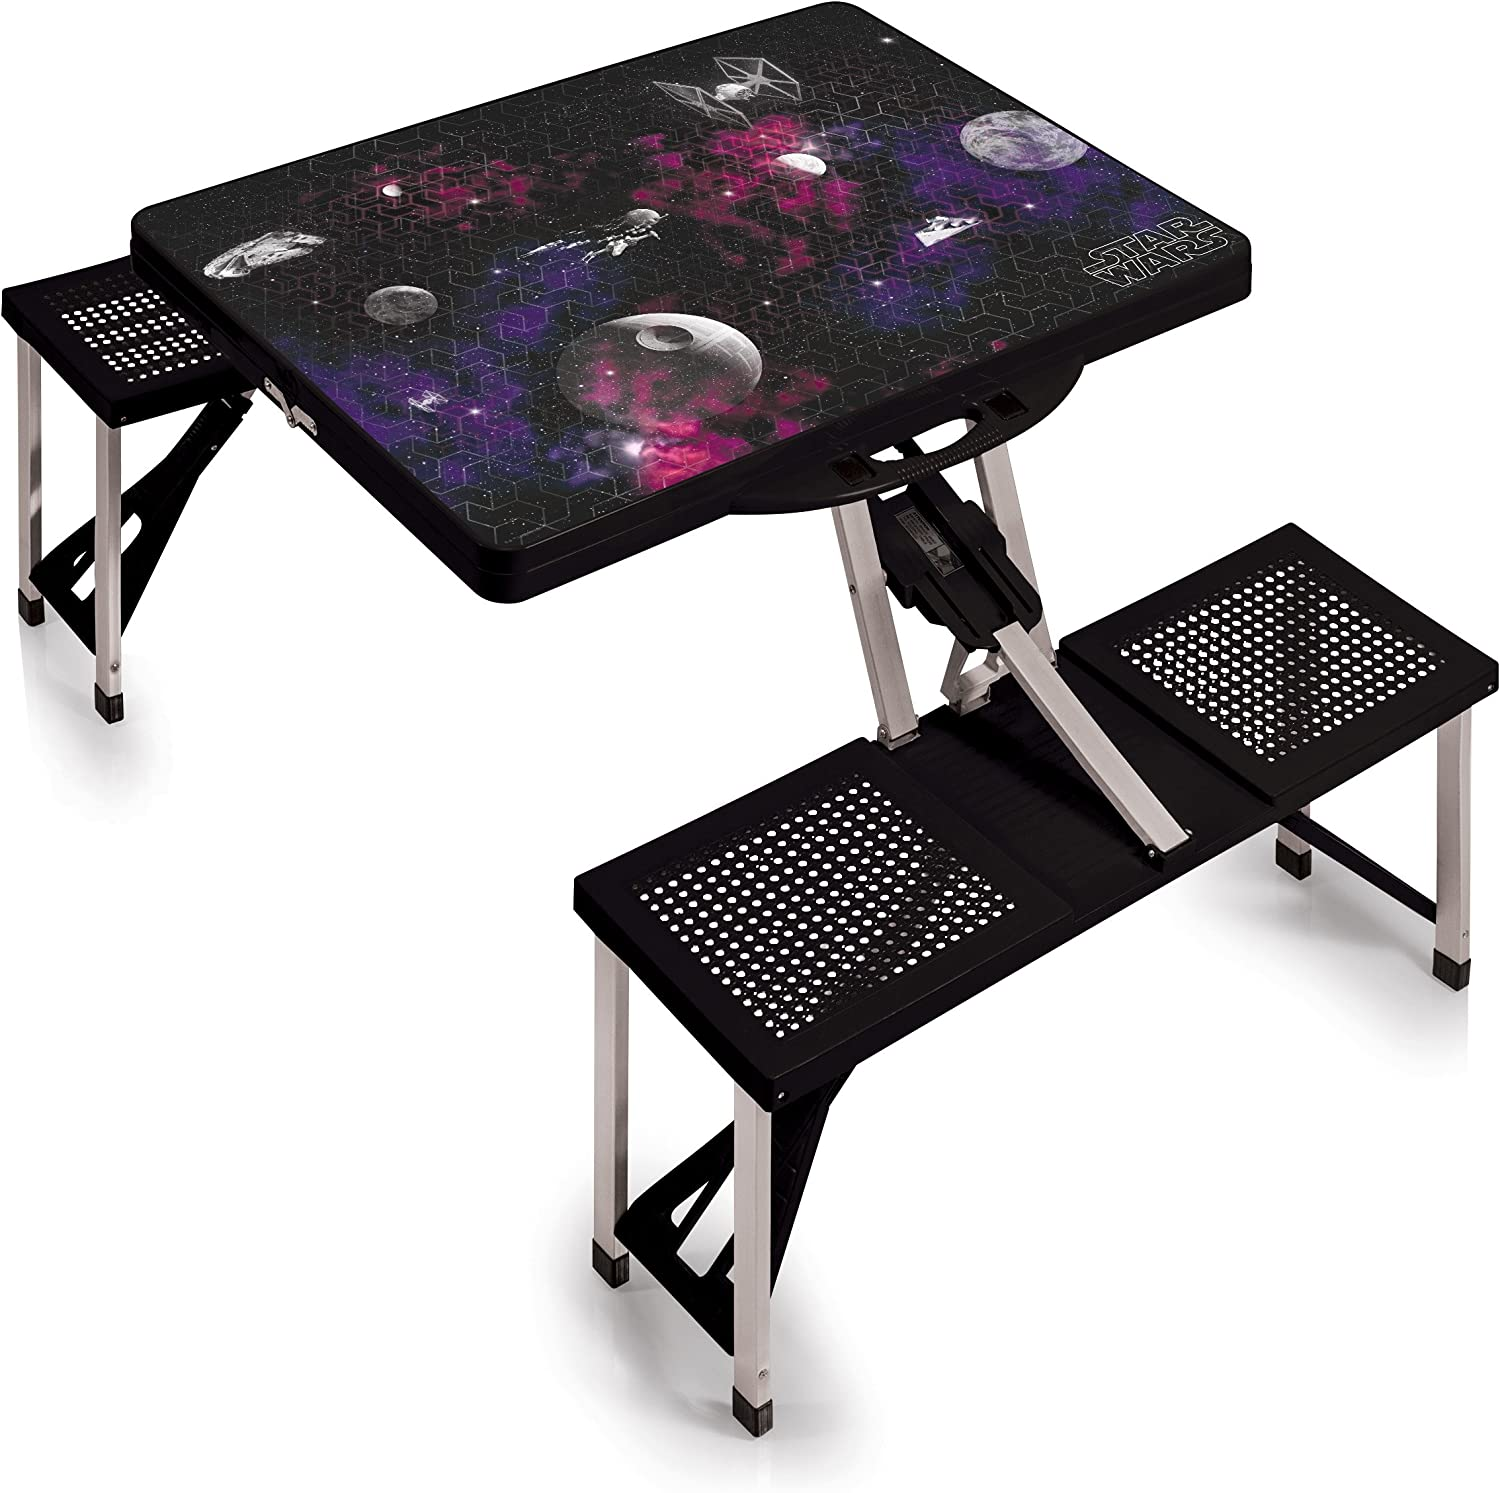 Lucas/Star Wars Portable Folding Picnic Table with Seating for 4